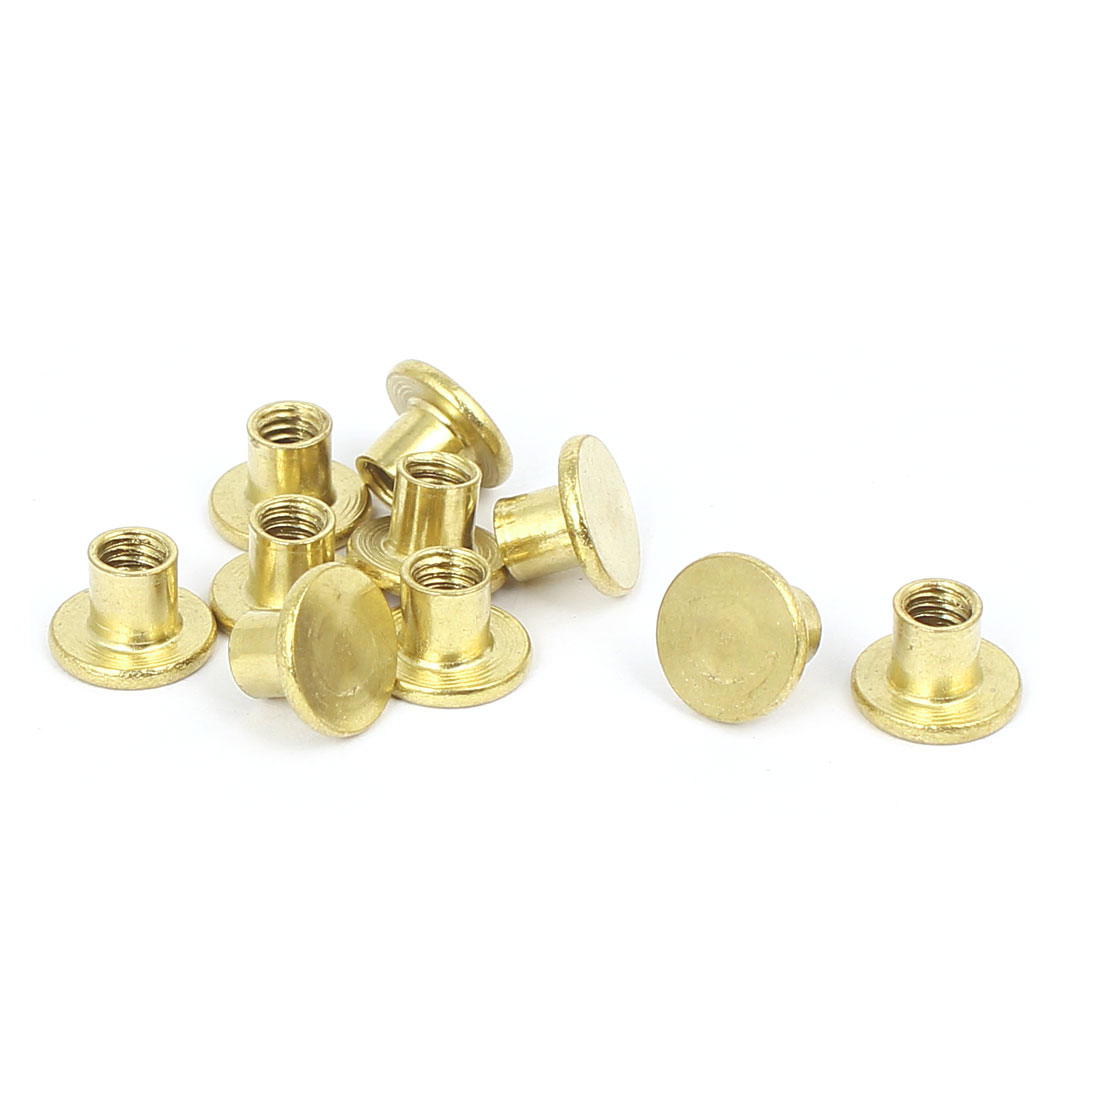 Photo Album Metal Brass Plated Binding Screw Post Barrel Nut 5mmx5mm 10pcs